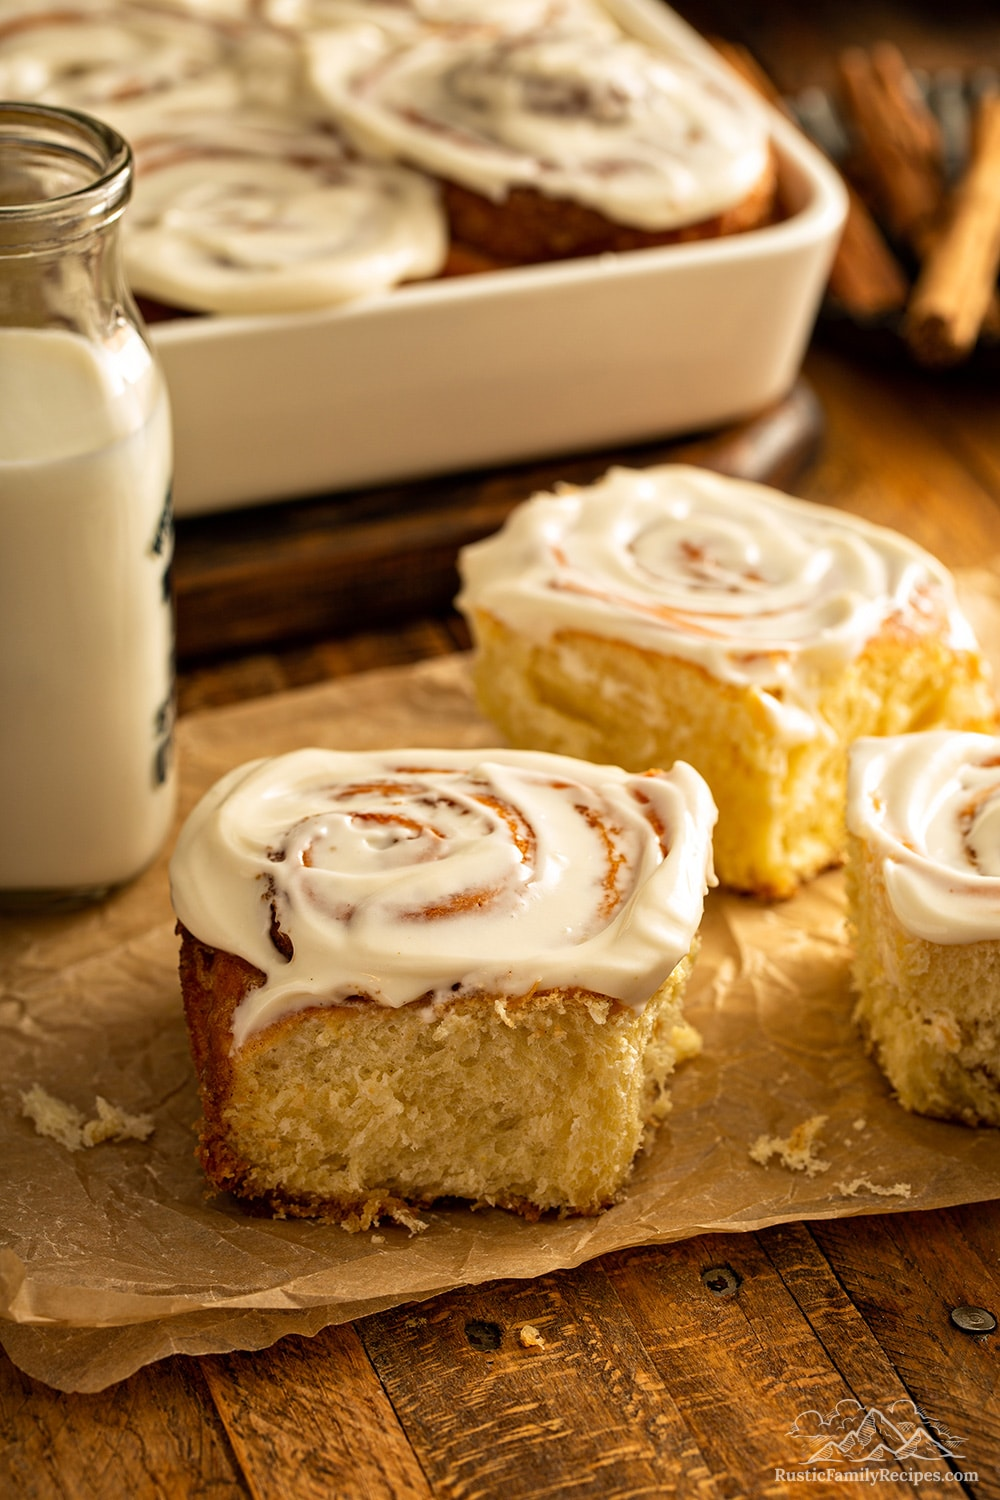 Three cinnamon rolls in front of a baking dish and a jar of milk